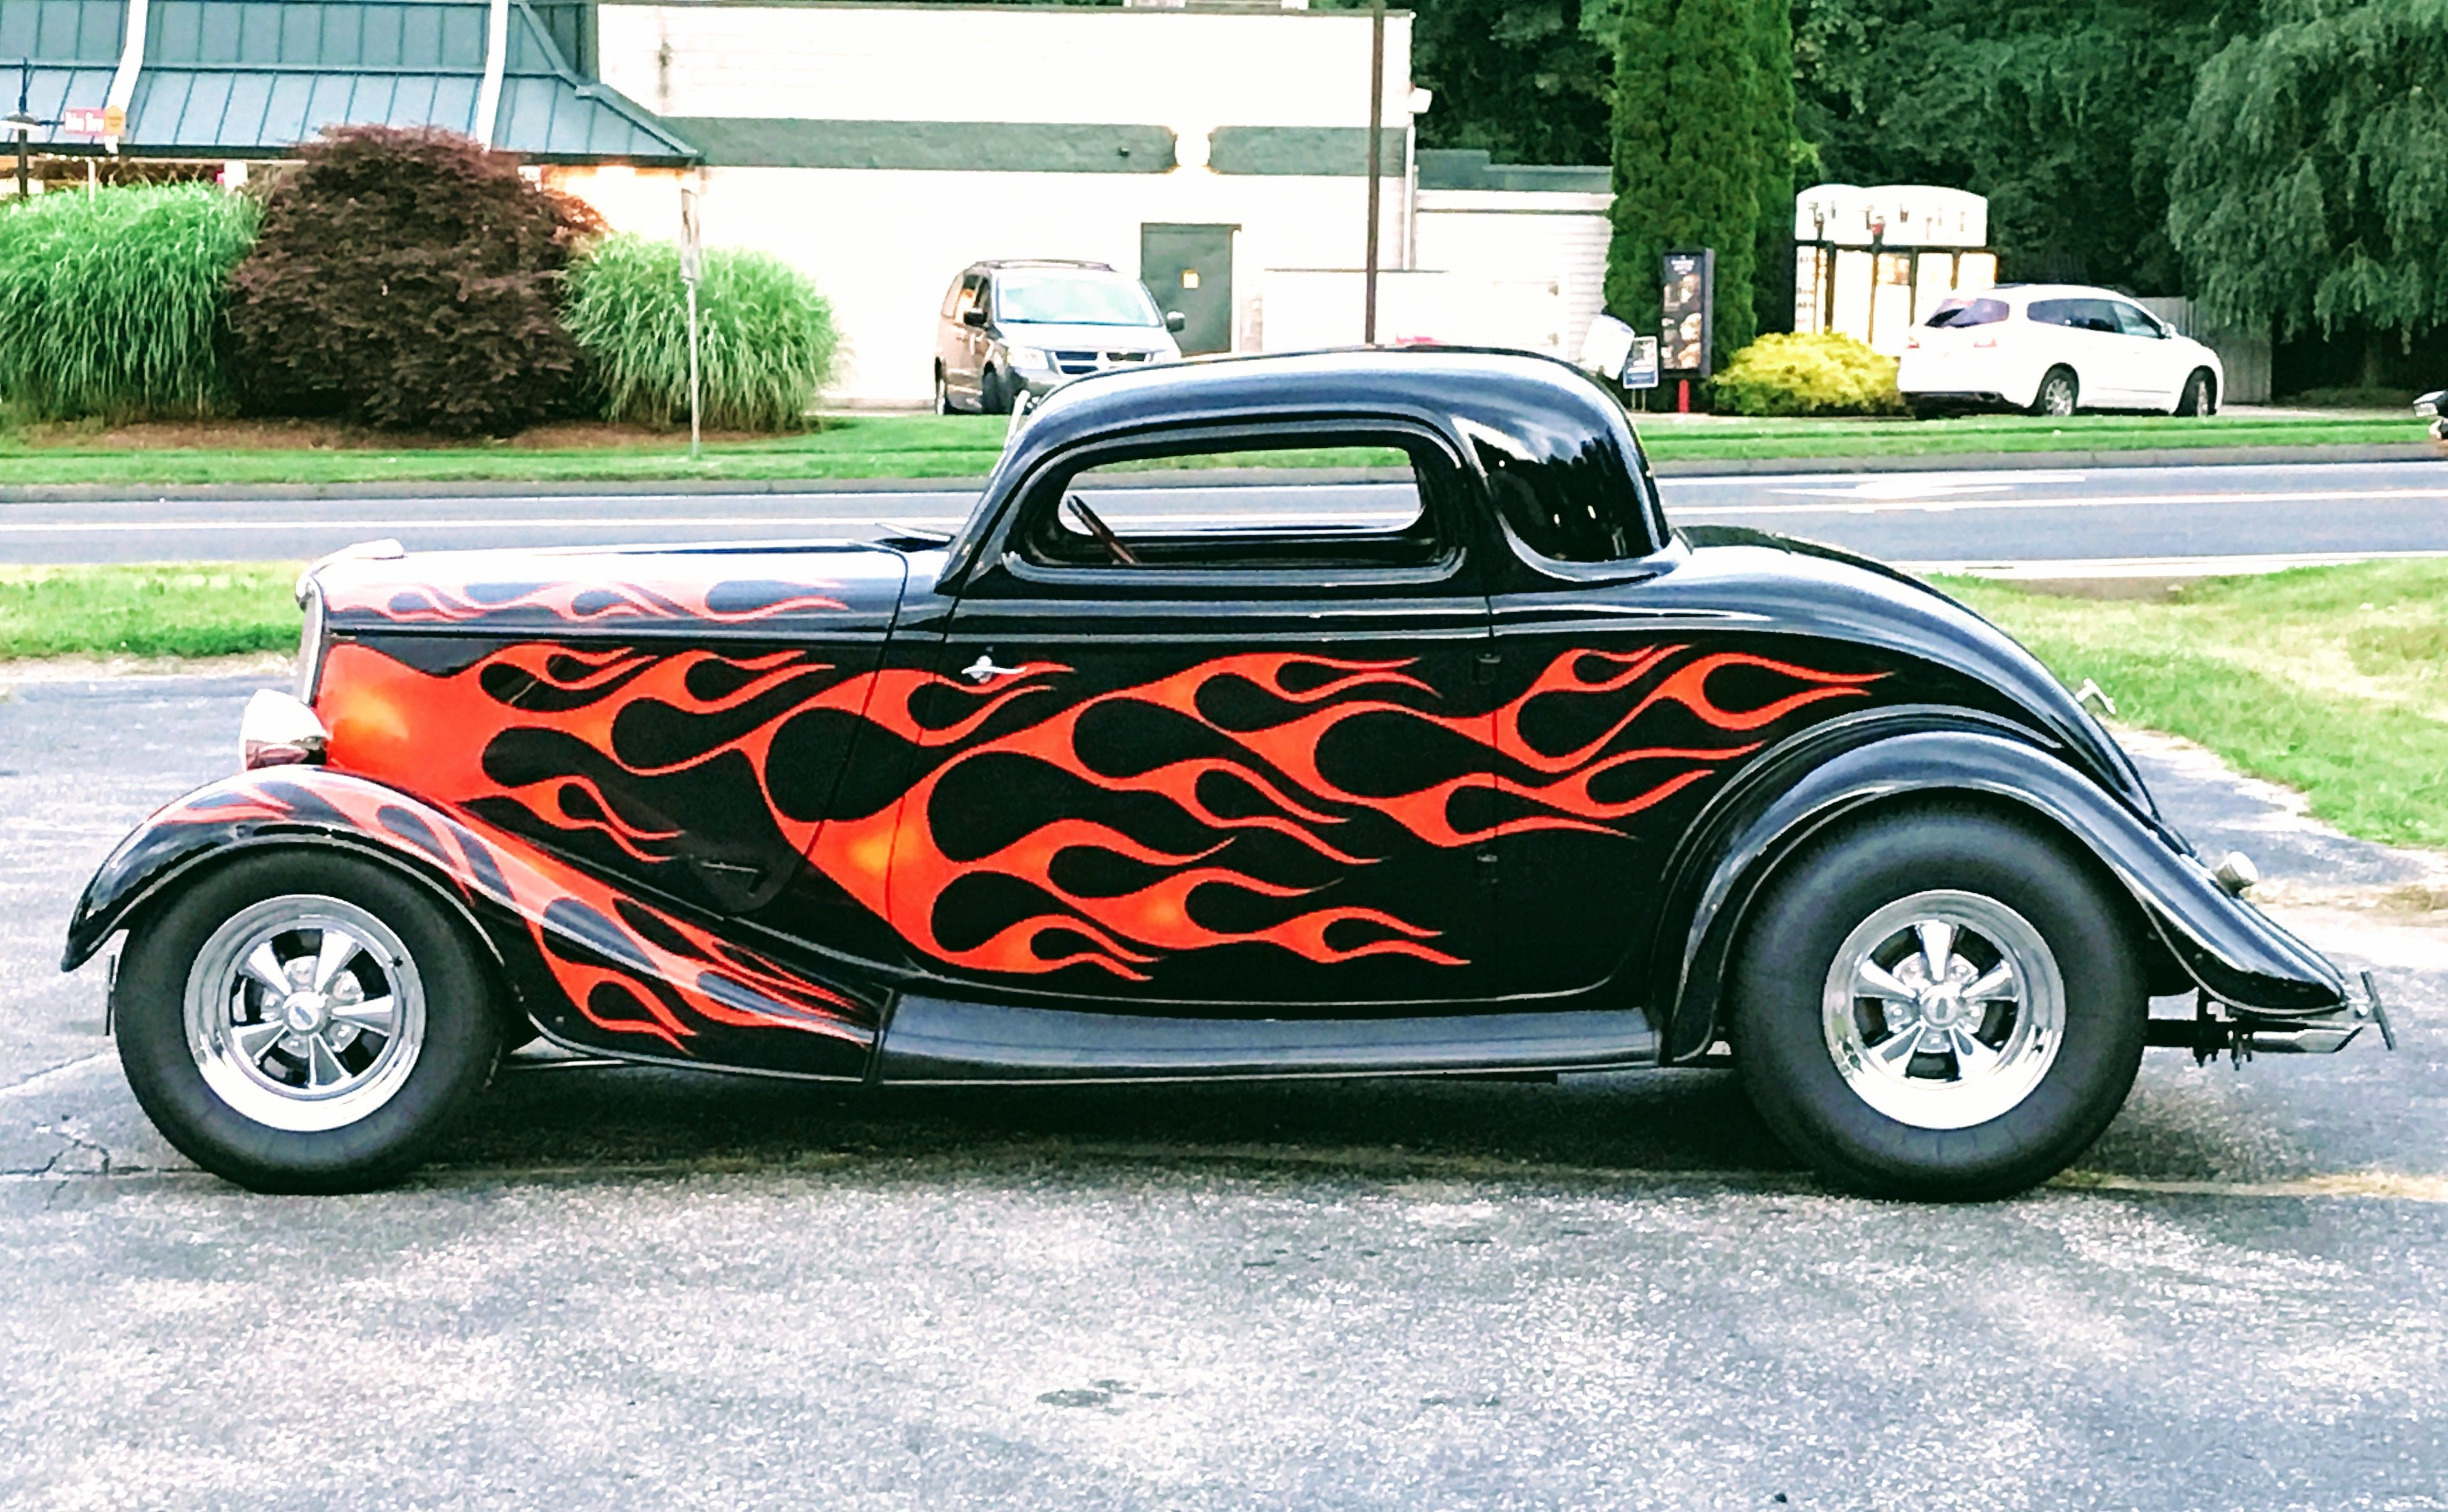 Pin by Ricky D Meek on #3. Customs and Hot Rods/ Just Cool Car\'s ...